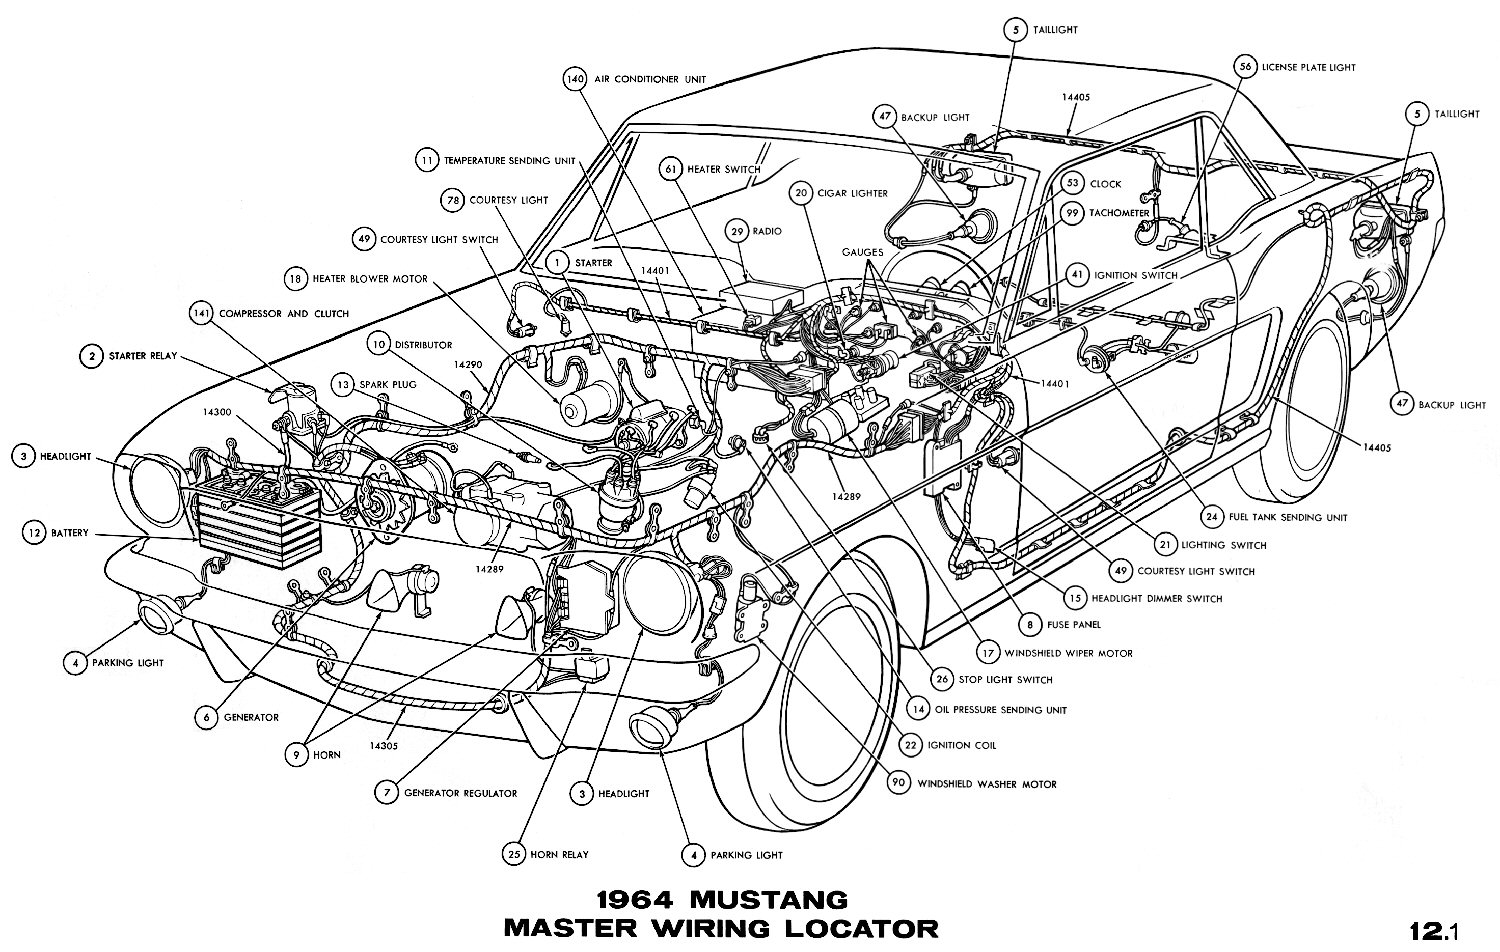 1964a 1964 mustang wiring diagrams average joe restoration 66 mustang wiring diagram at virtualis.co